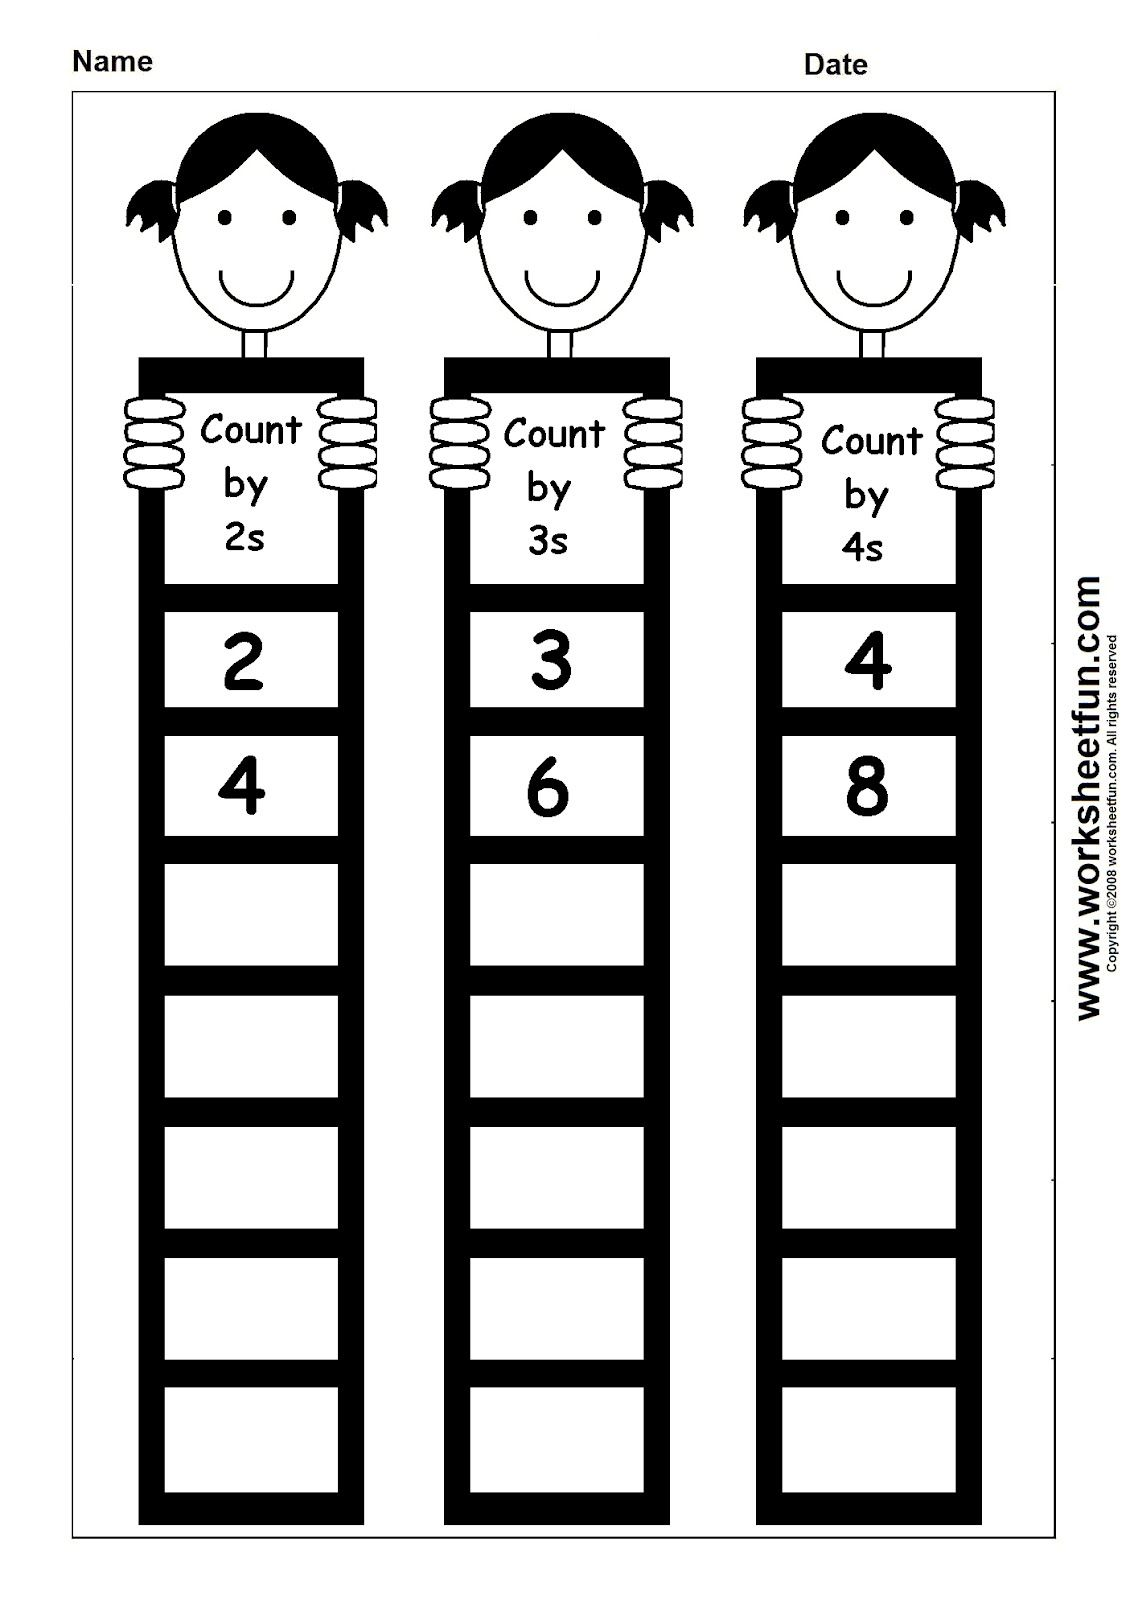 Worksheets Math Worksheets For First Grade 1000 images about first grade math on pinterest worksheets and worksheets